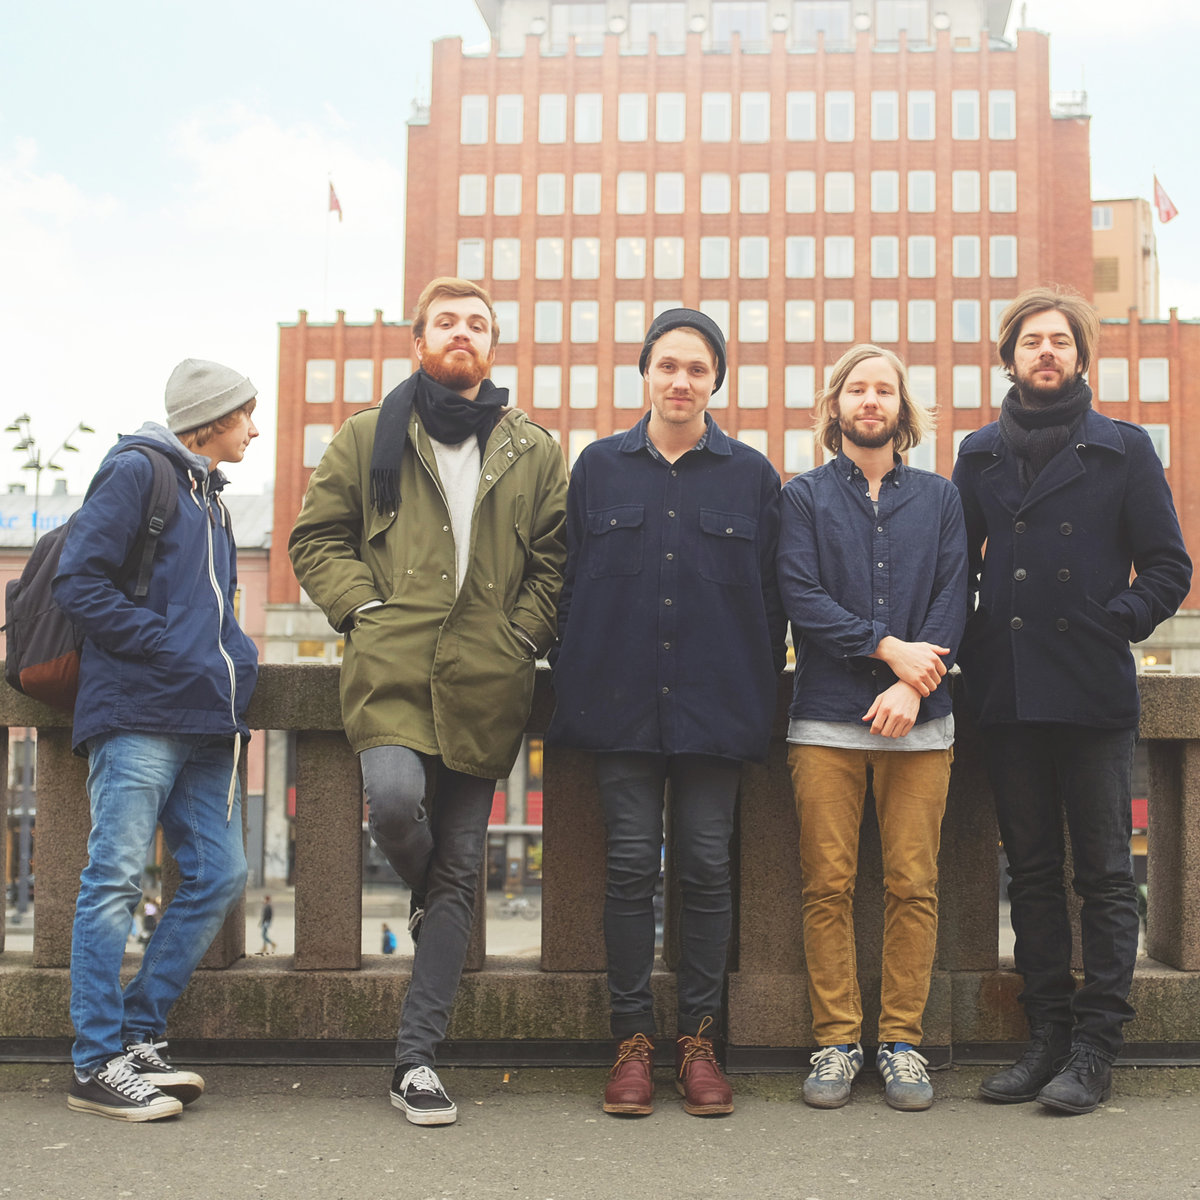 Dråpe: - An indie rock band from Oslo, Norway.